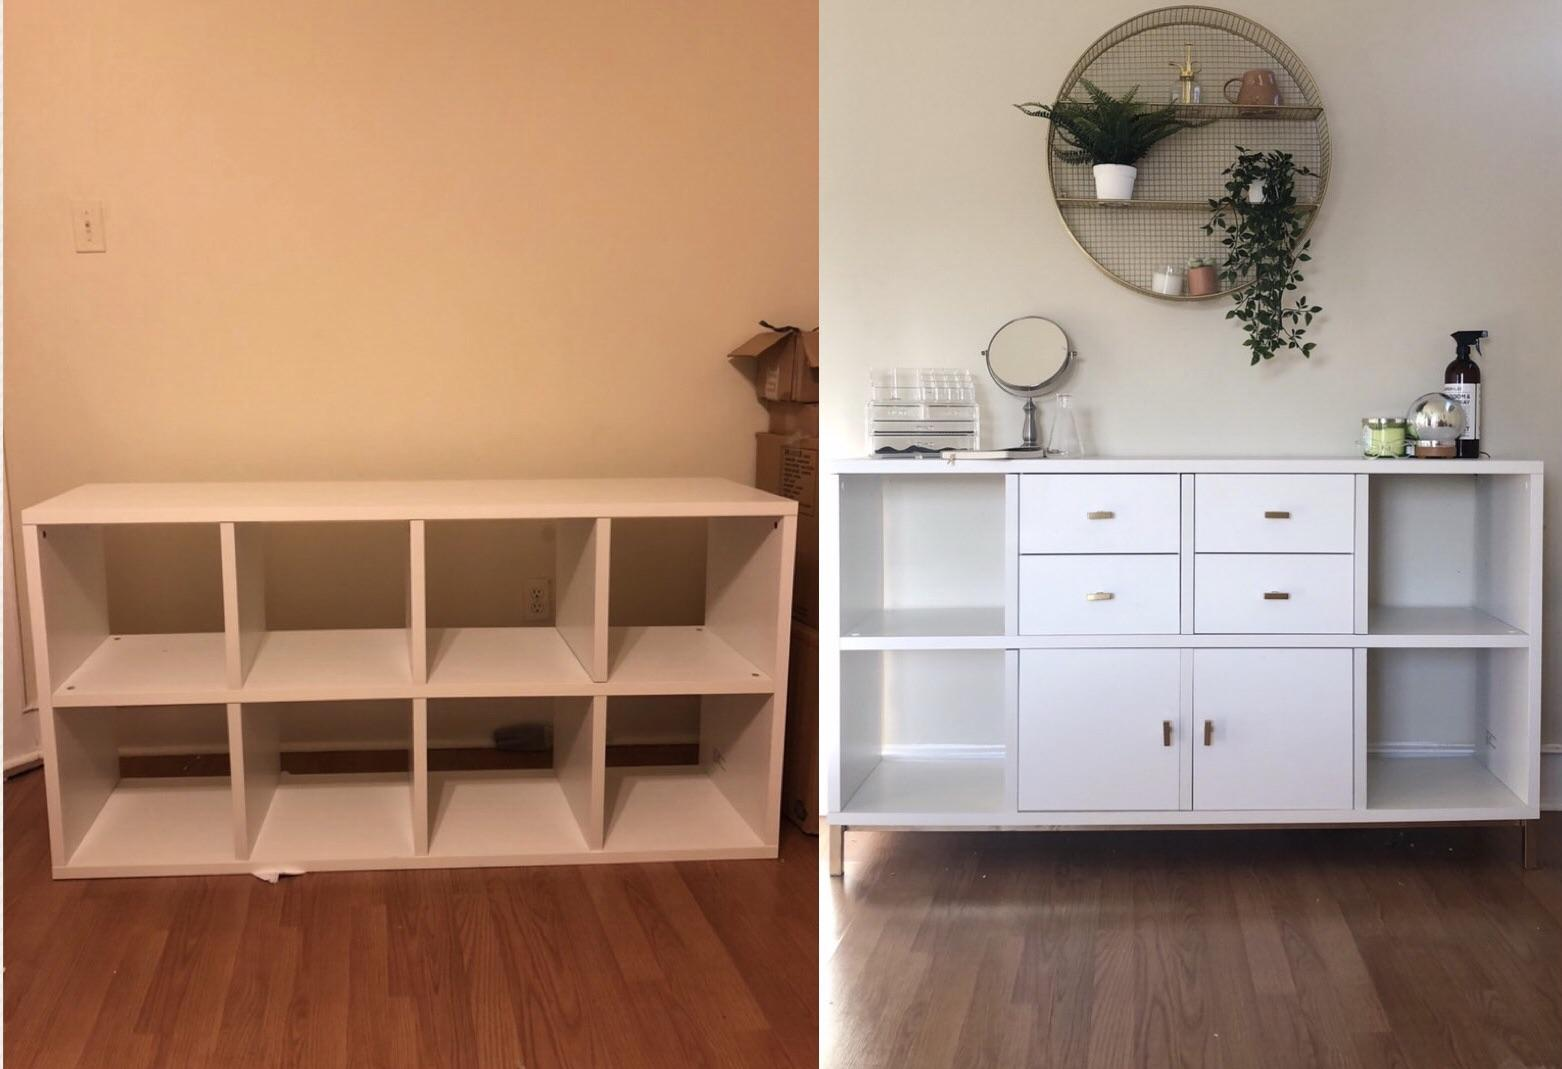 Old College Cube Shelves To Fancy Adult Dresser! : Upcycling